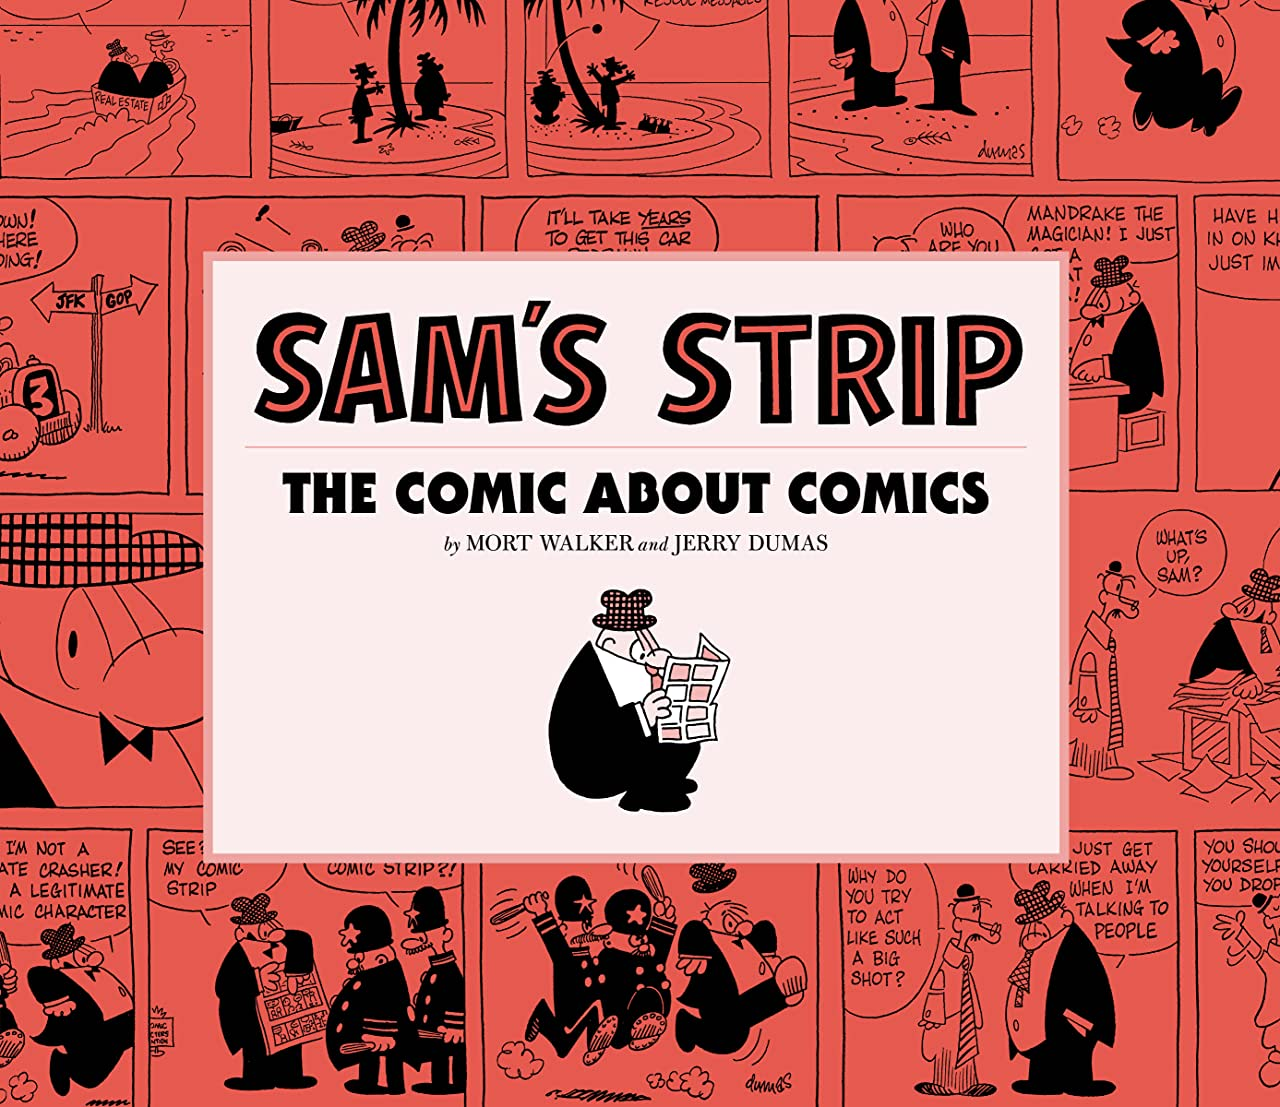 Sam's Strip